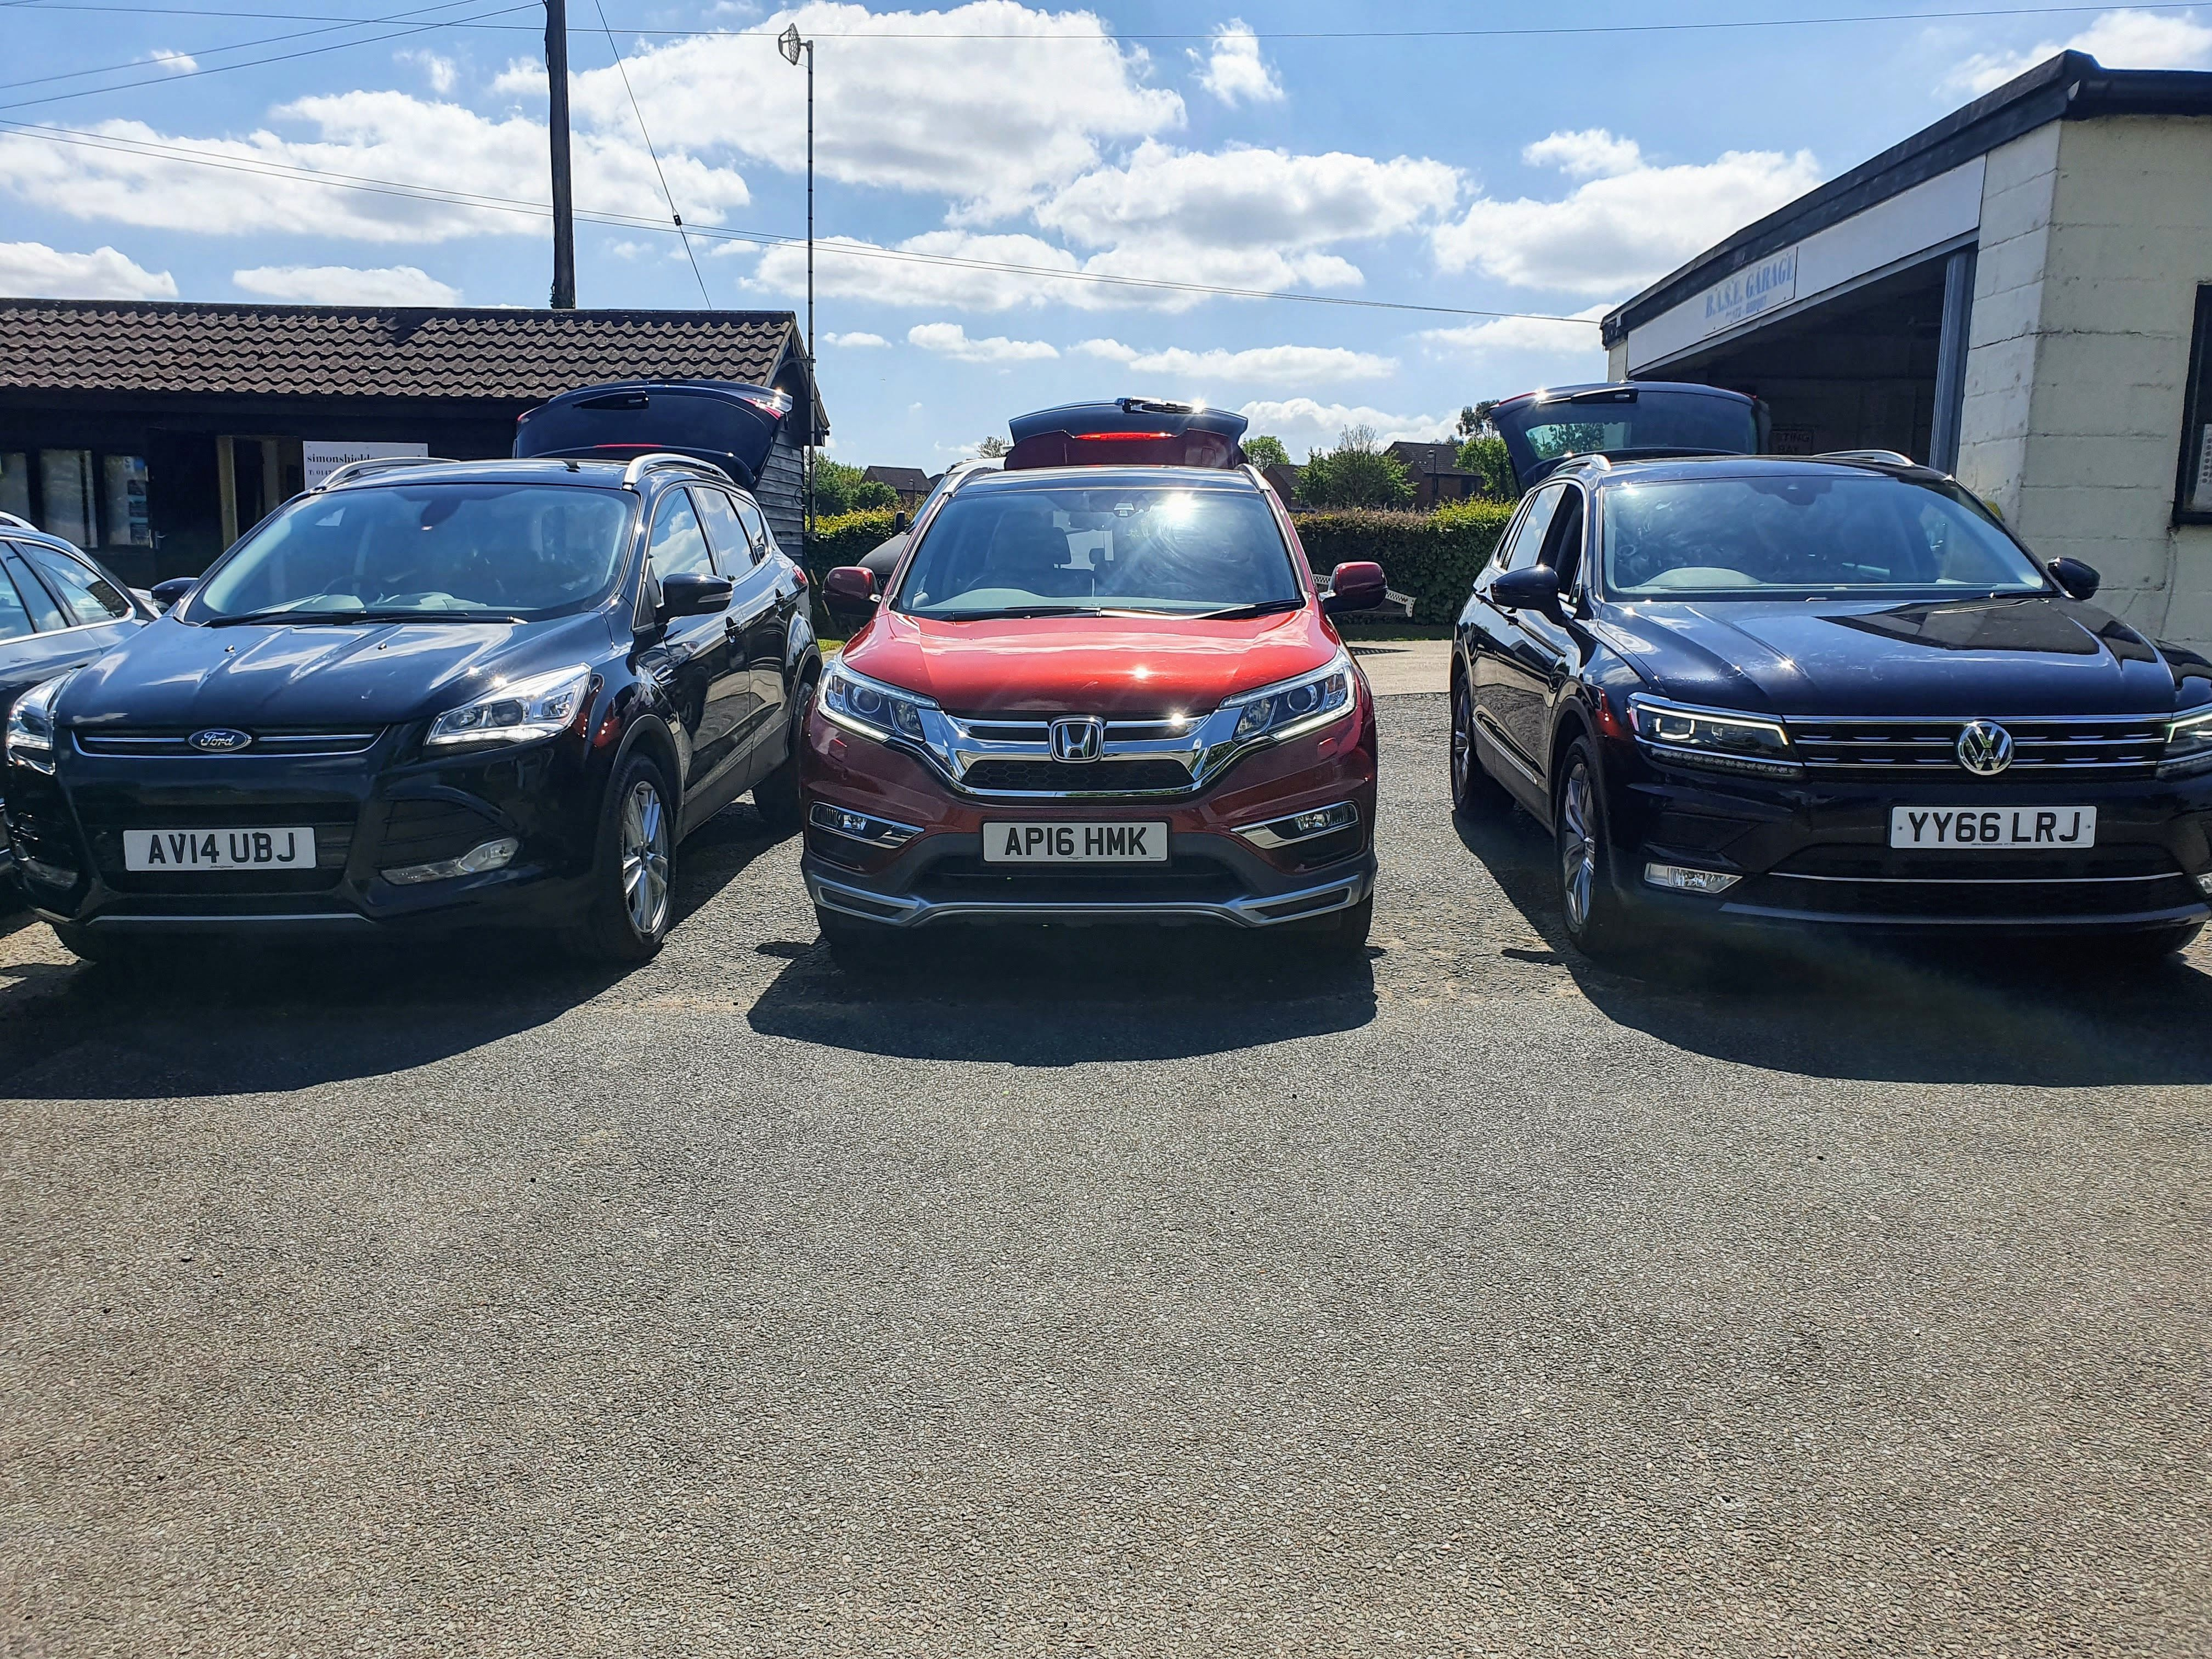 Ford Kuga vs VW Tiguan vs Honda CRV - which used car would you buy?